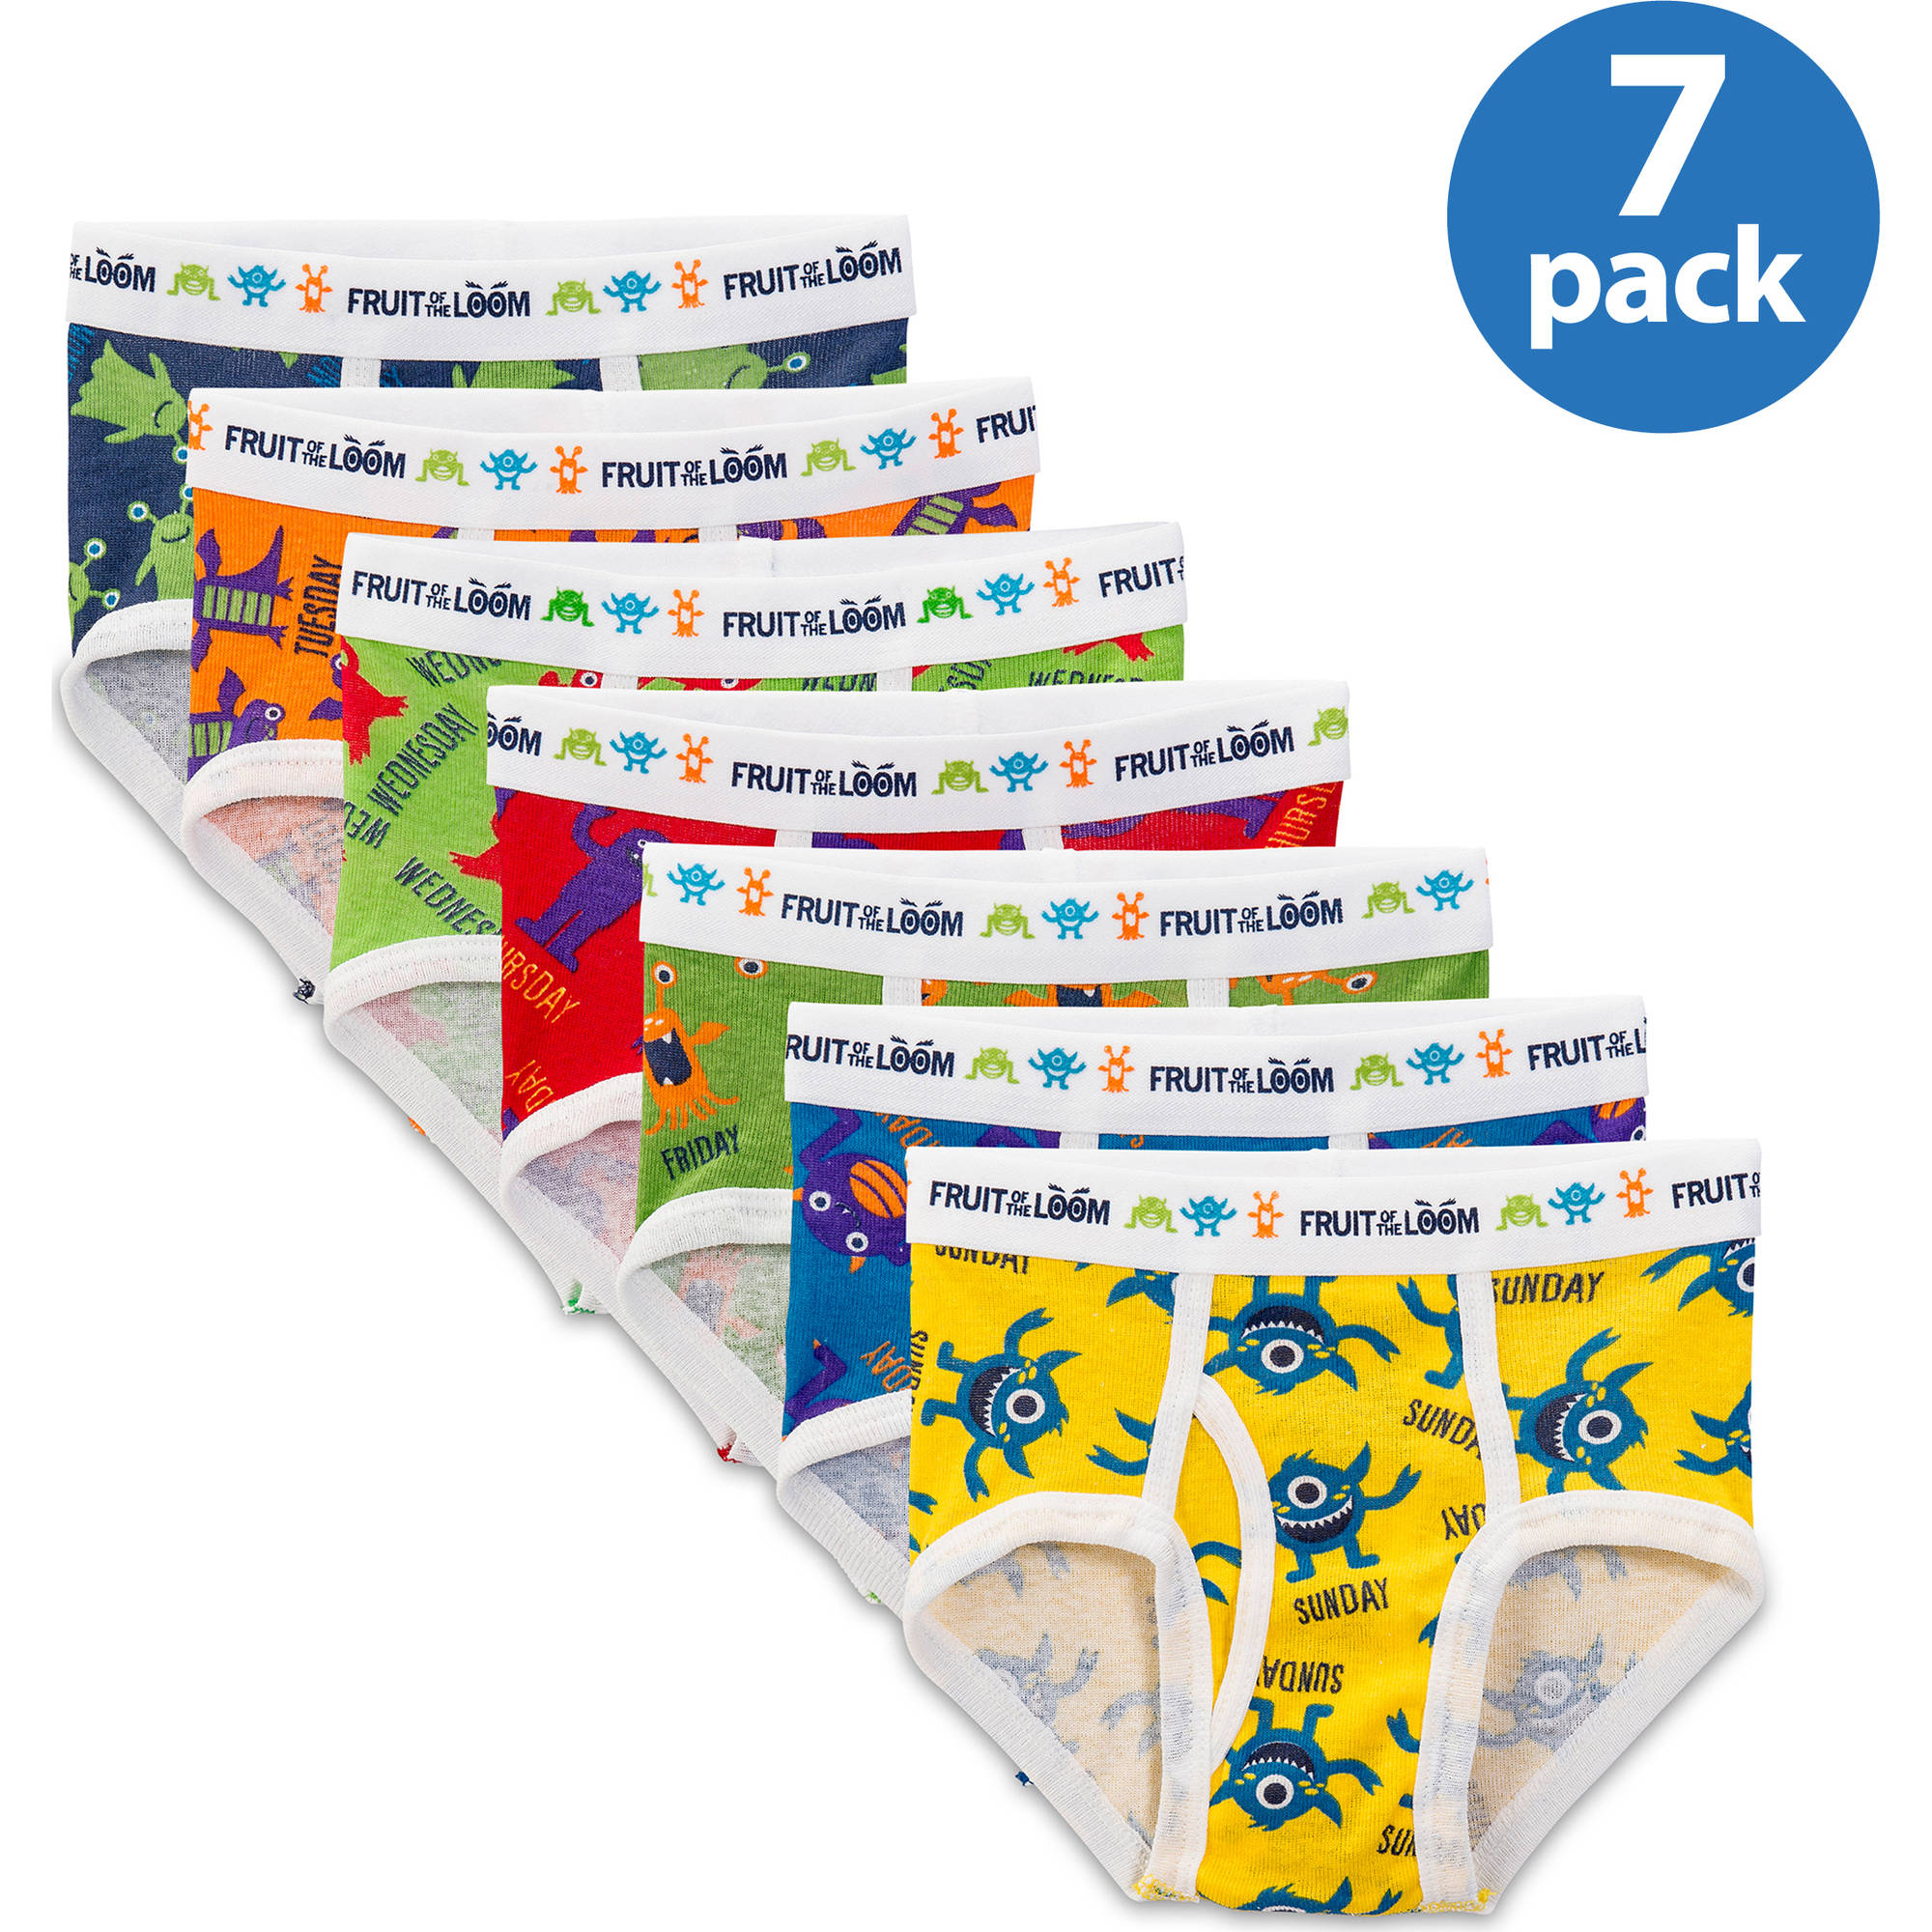 Fruit of the Loom Toddler Boy Days of the Week Briefs, 7-pack